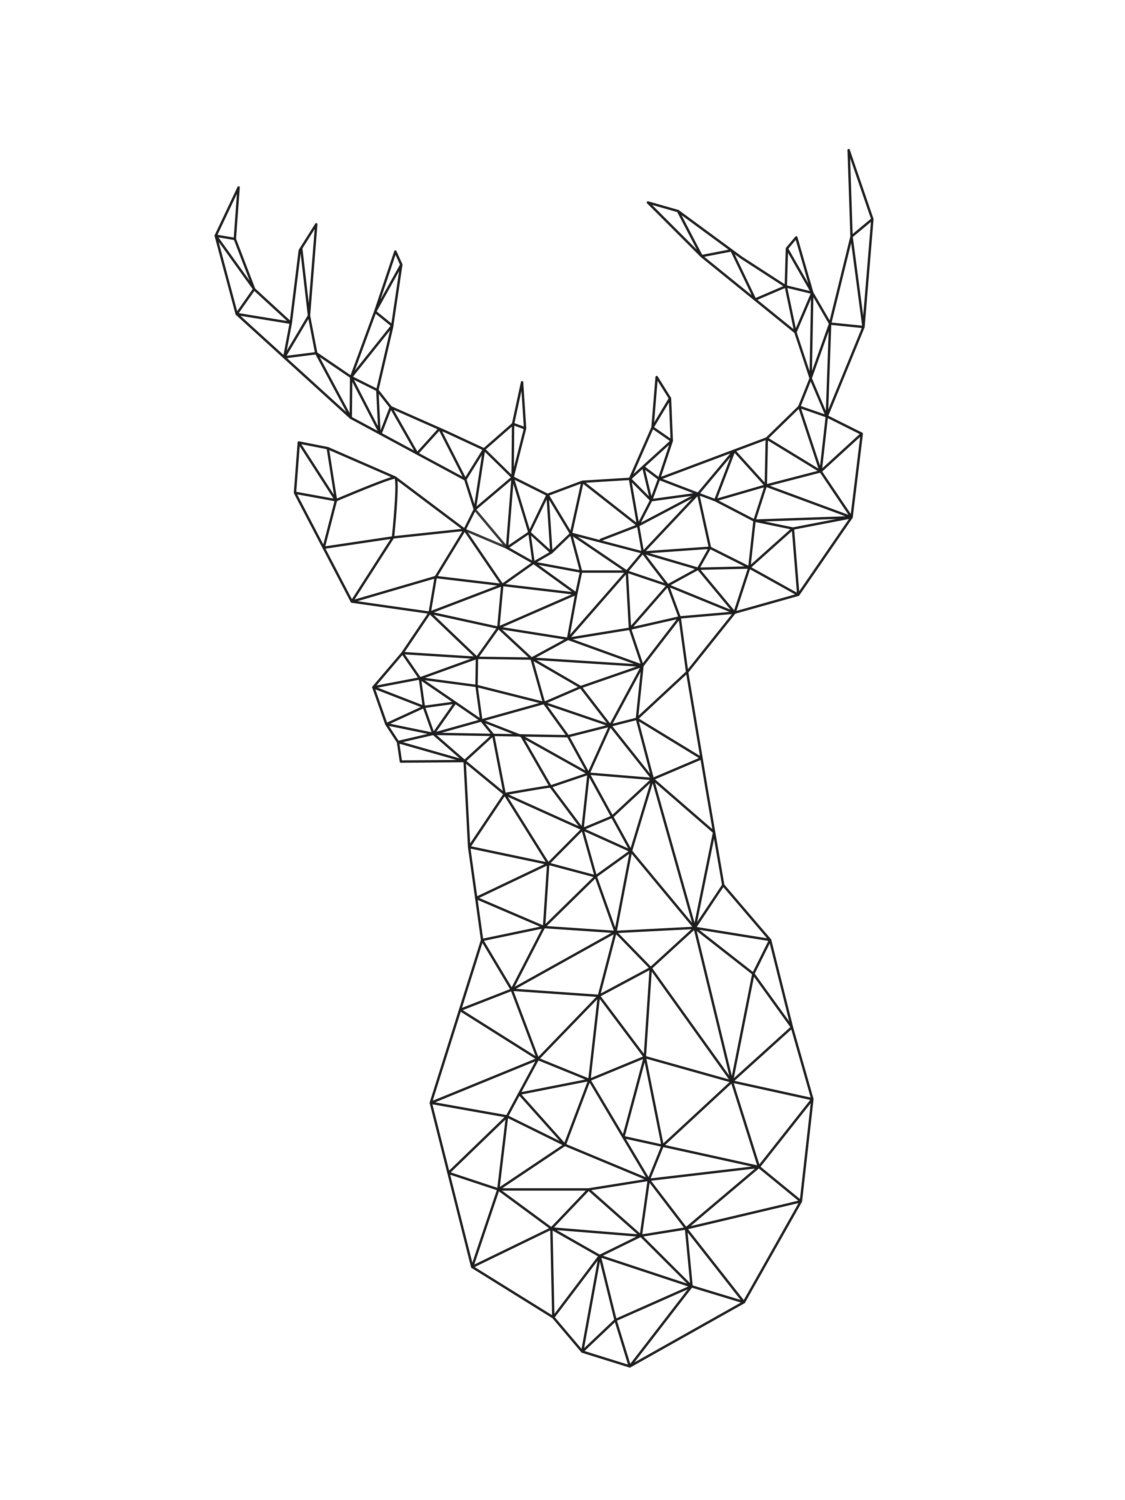 Origami Deer Art Print Deer Geometric Animal Diy Wall